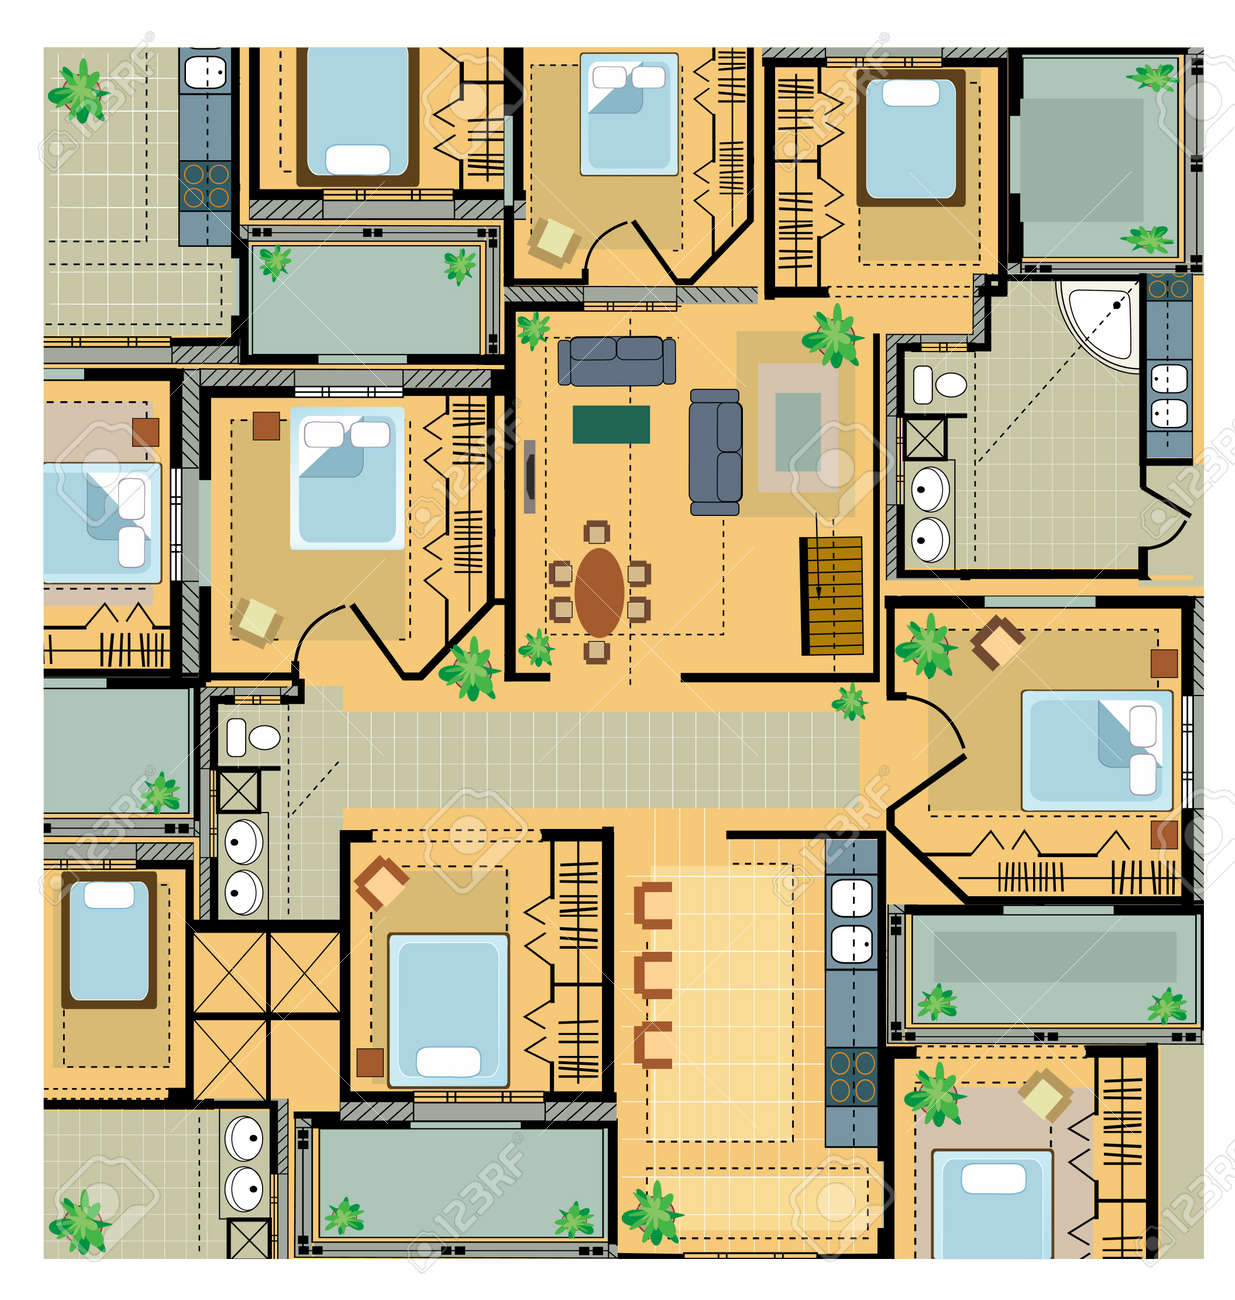 12 400 architectural plans stock illustrations cliparts and architectural plans color plan house on a white background